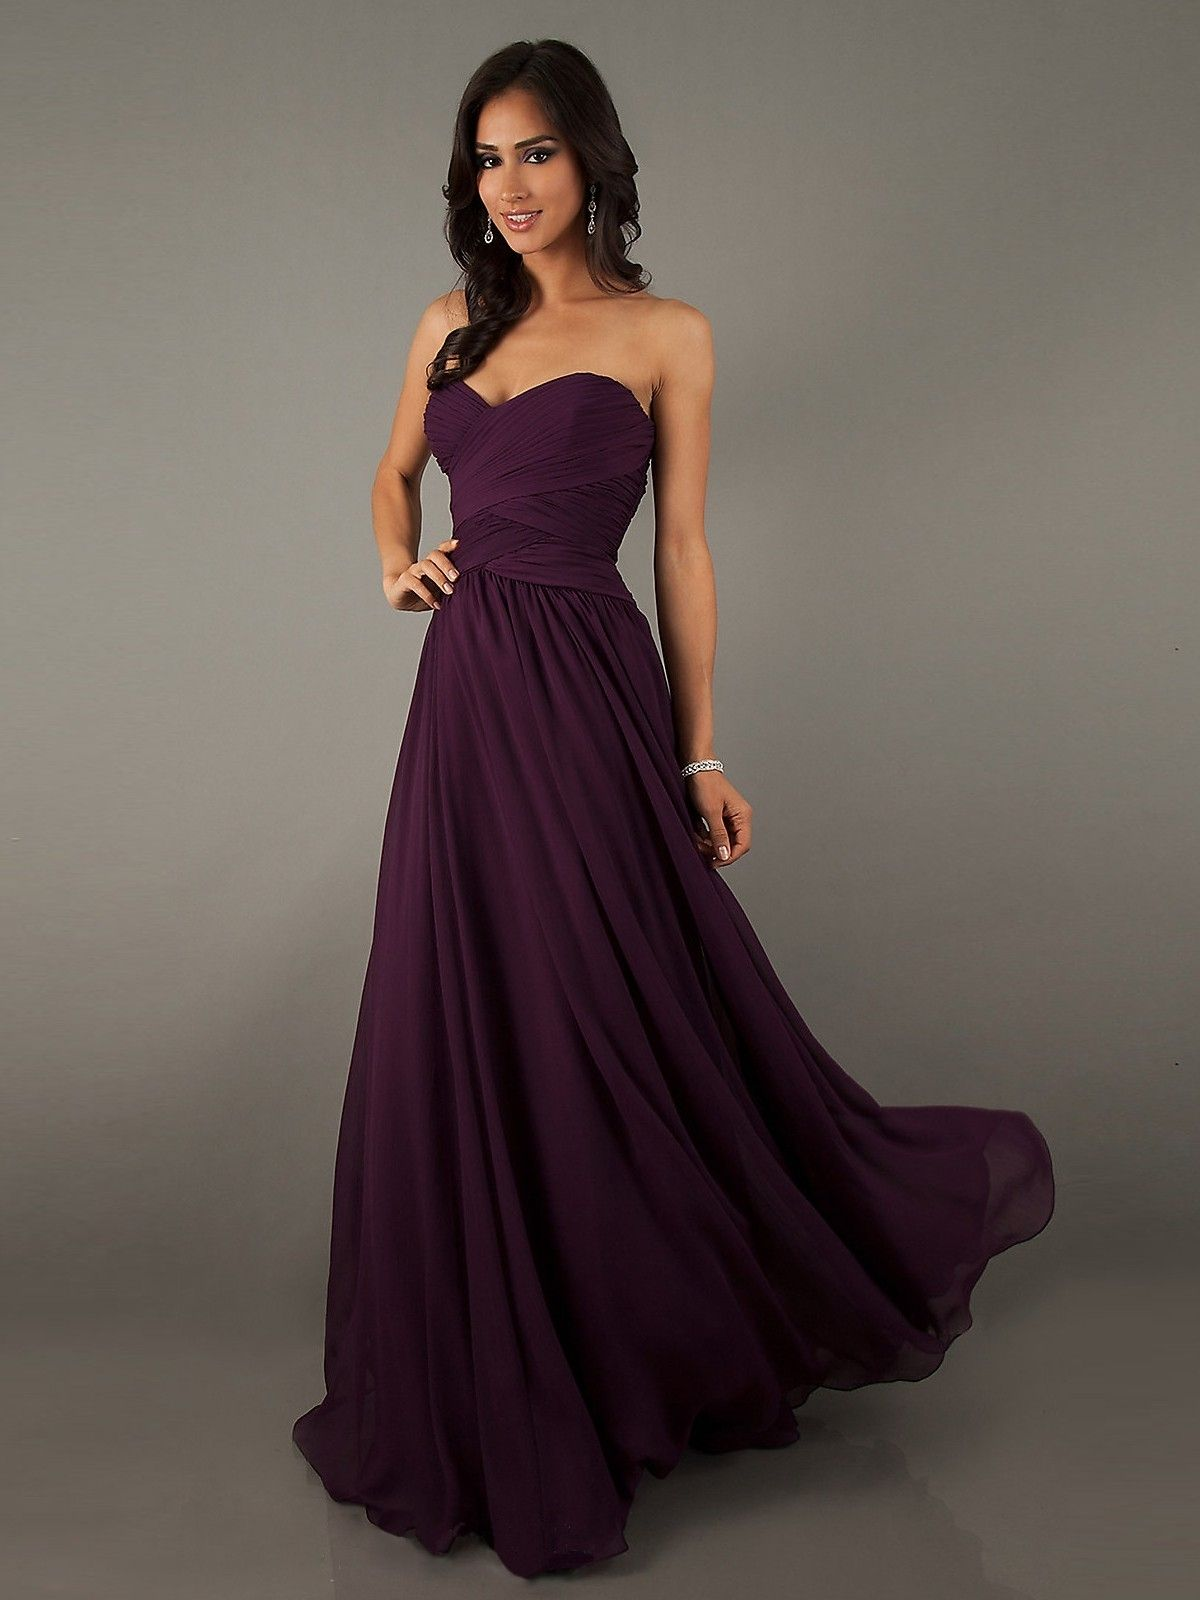 525b4c1ae85 Eggplant Dresses For Weddings